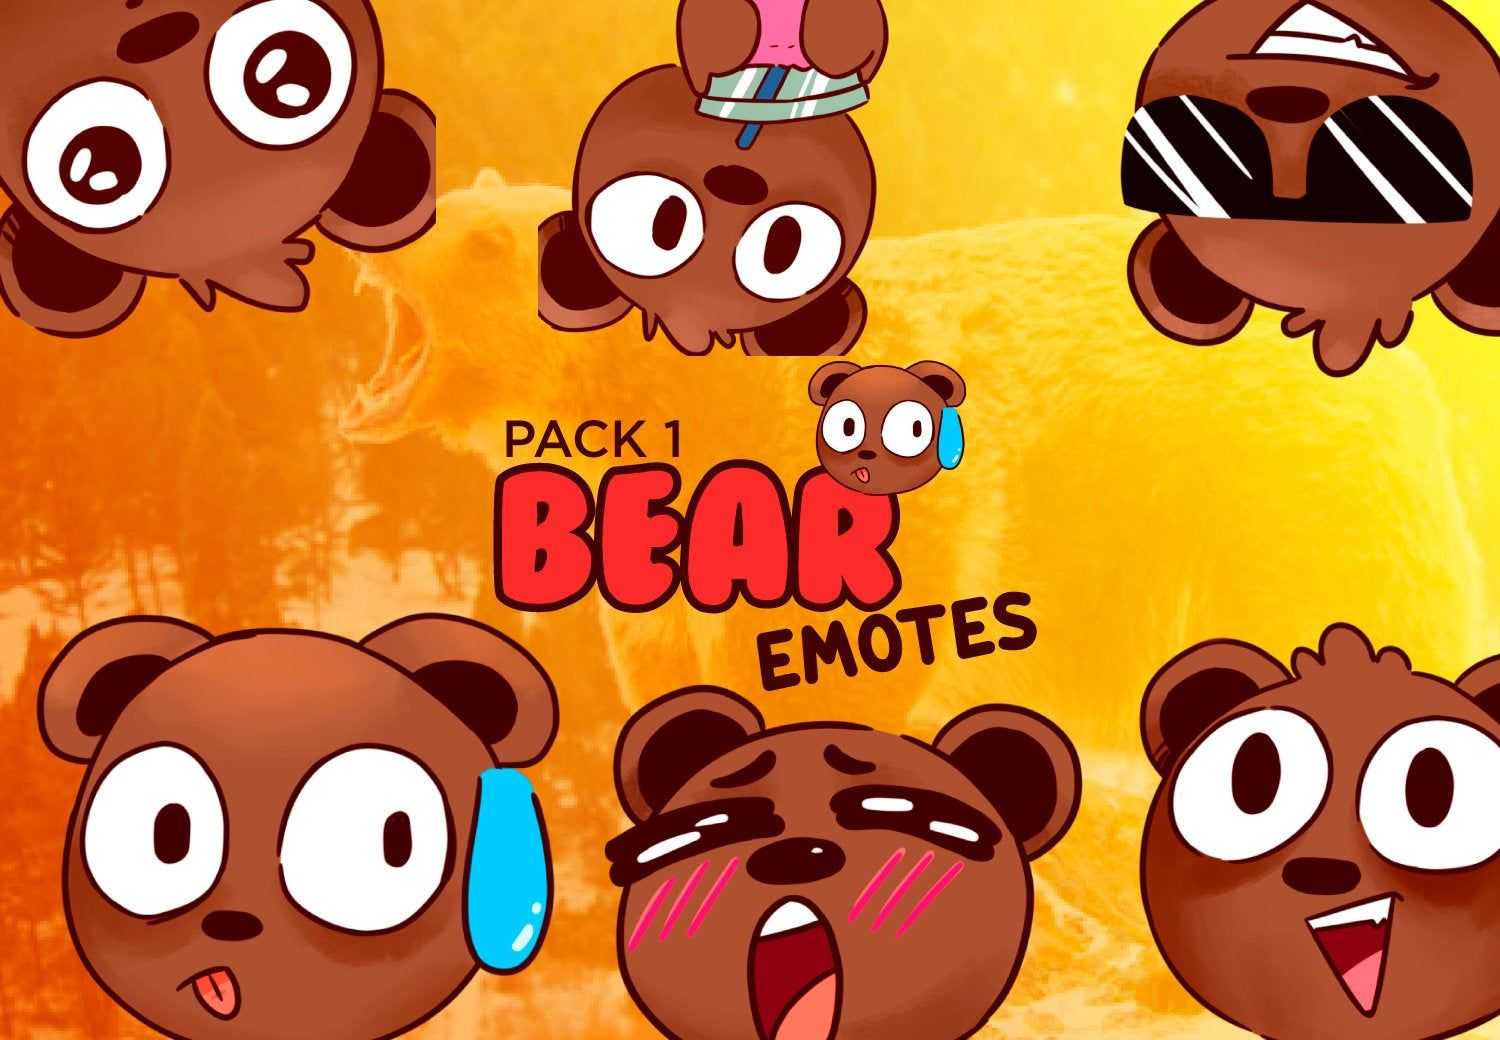 6 Cute Bears Emotes For Twitch Discord And Youtube Pack 1 In 2020 Cute Bears Bear Cute